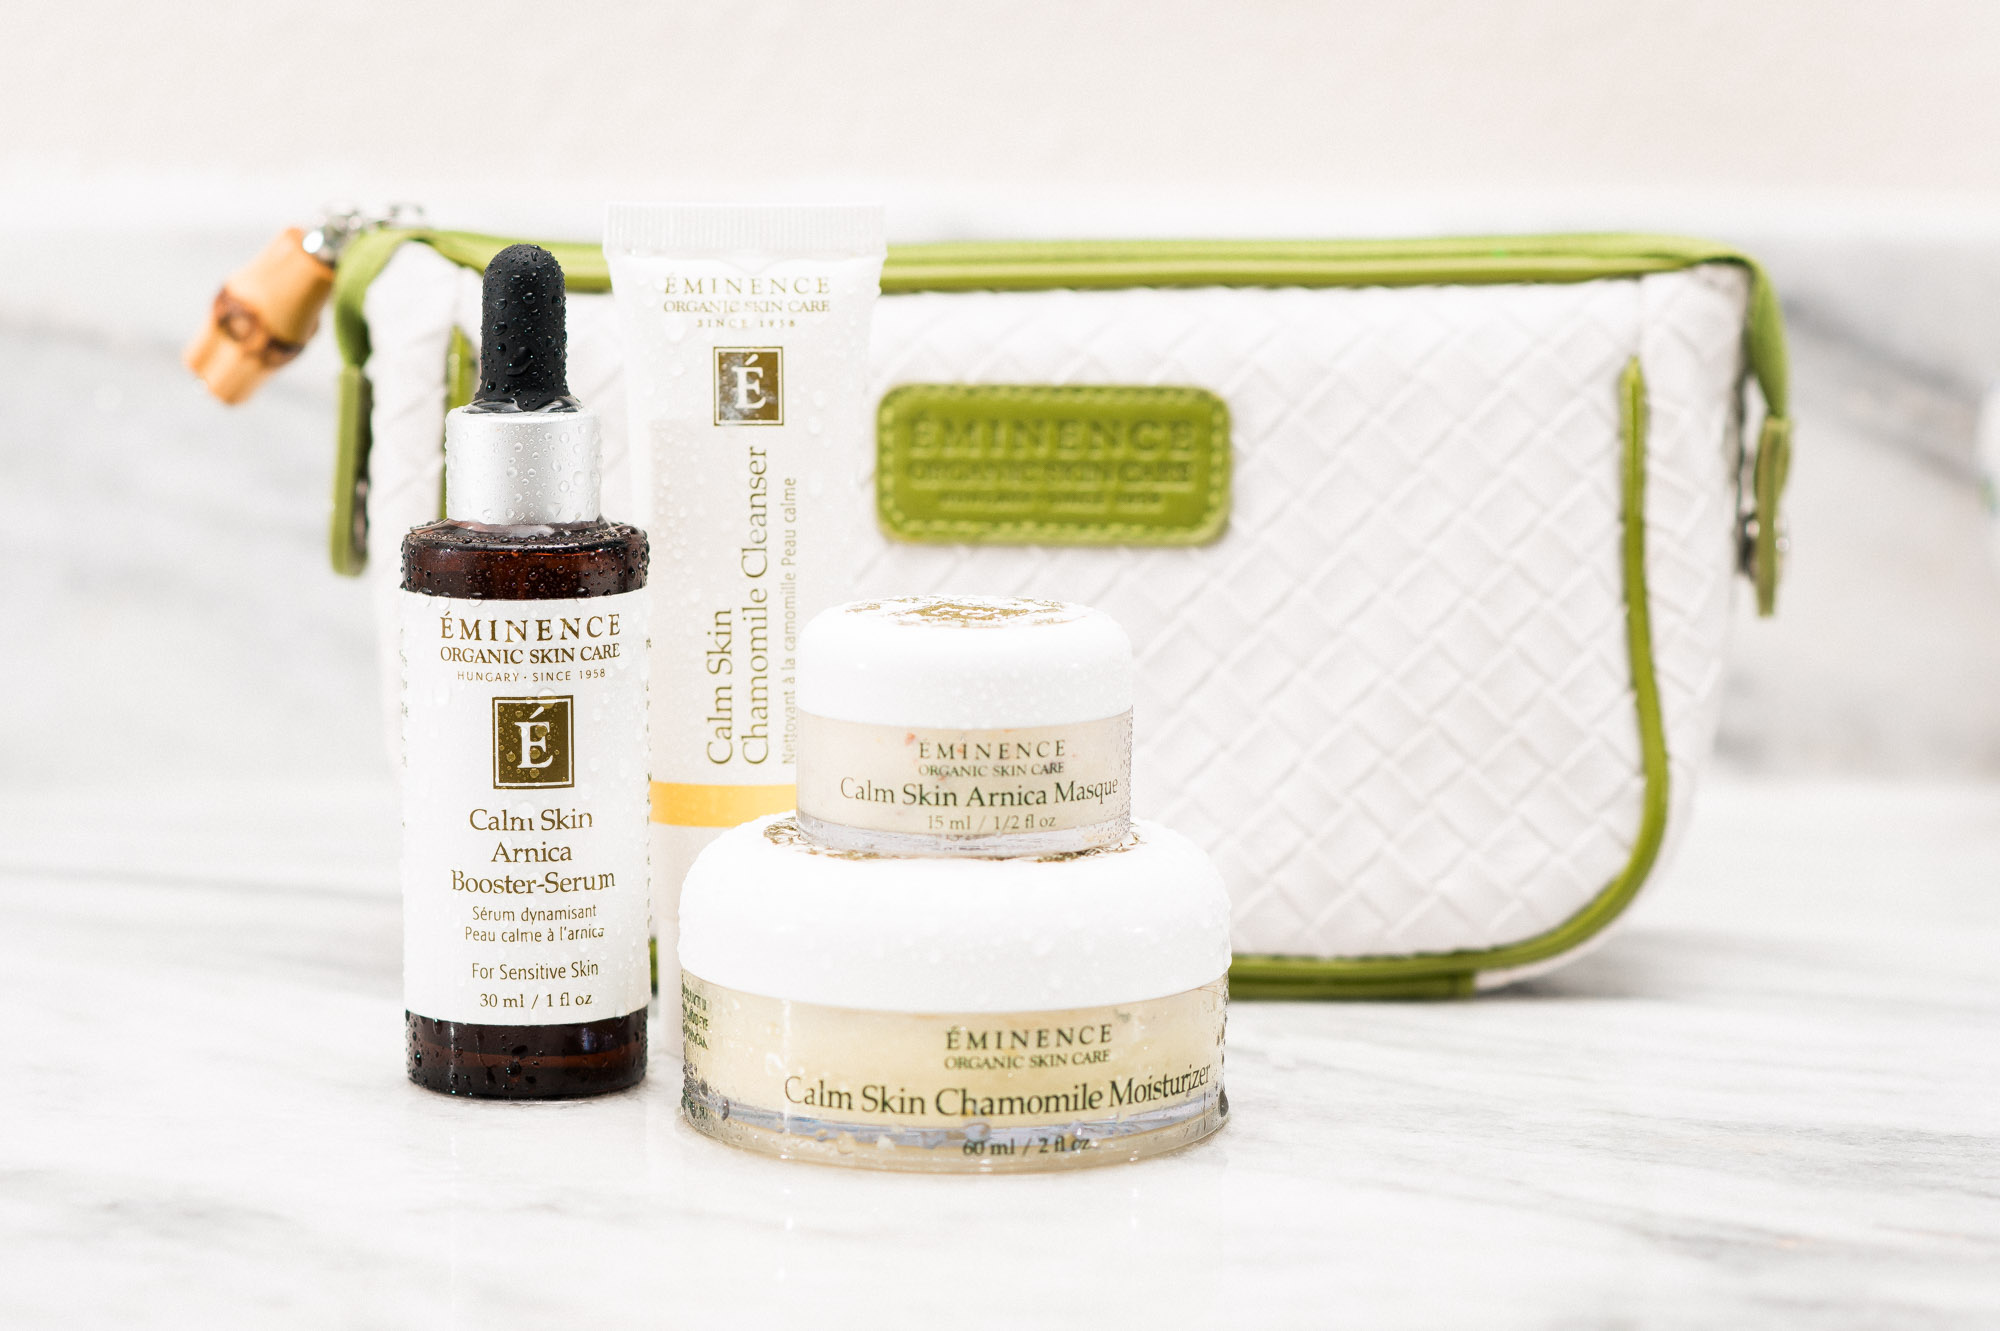 Treat your skin to something nice with my nightly skincare routine